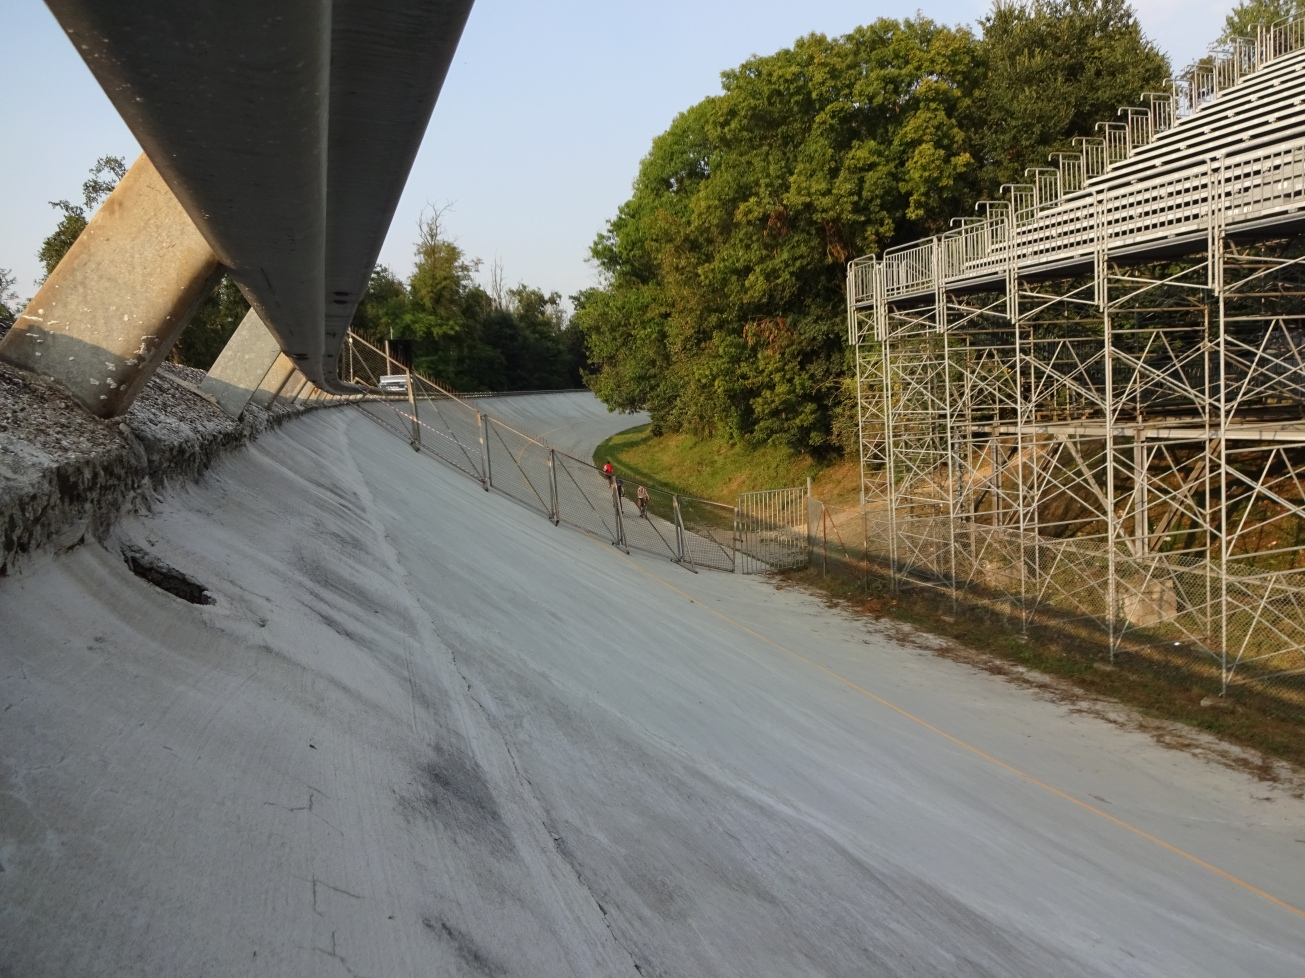 monza-old-banking